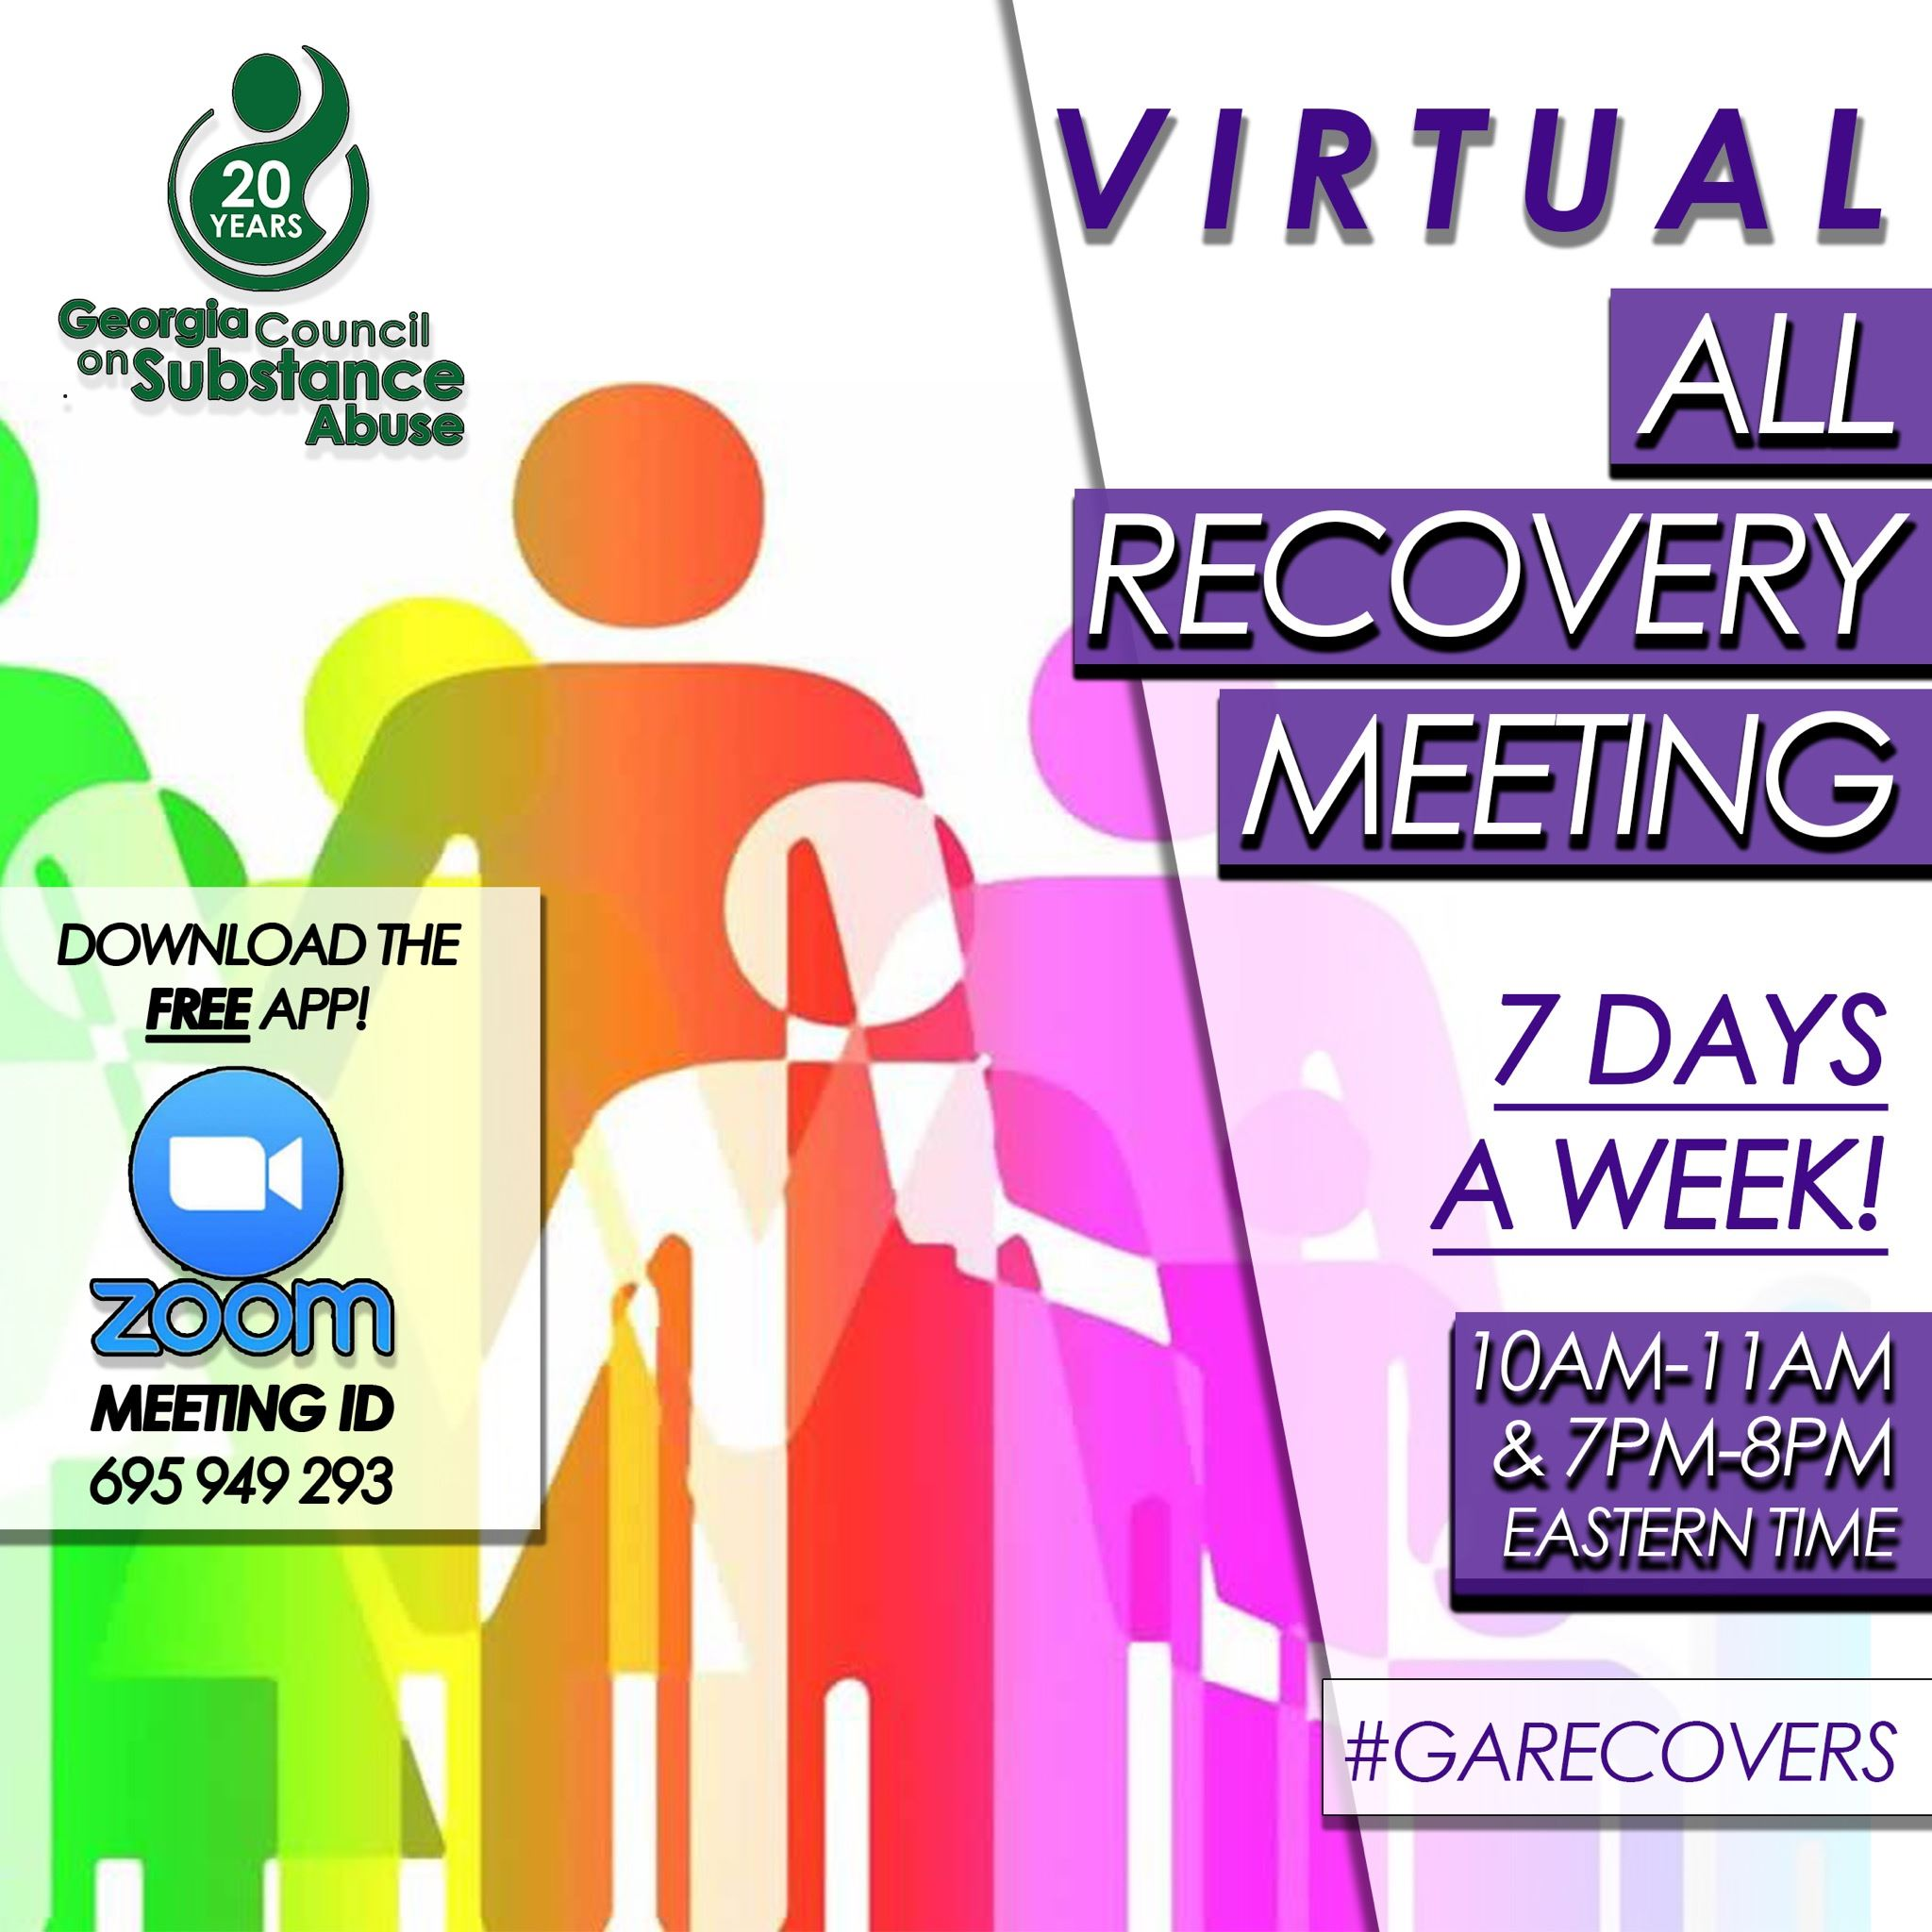 Georgia Council on Substance Abuse Virtual All Recovery Meetings flyer